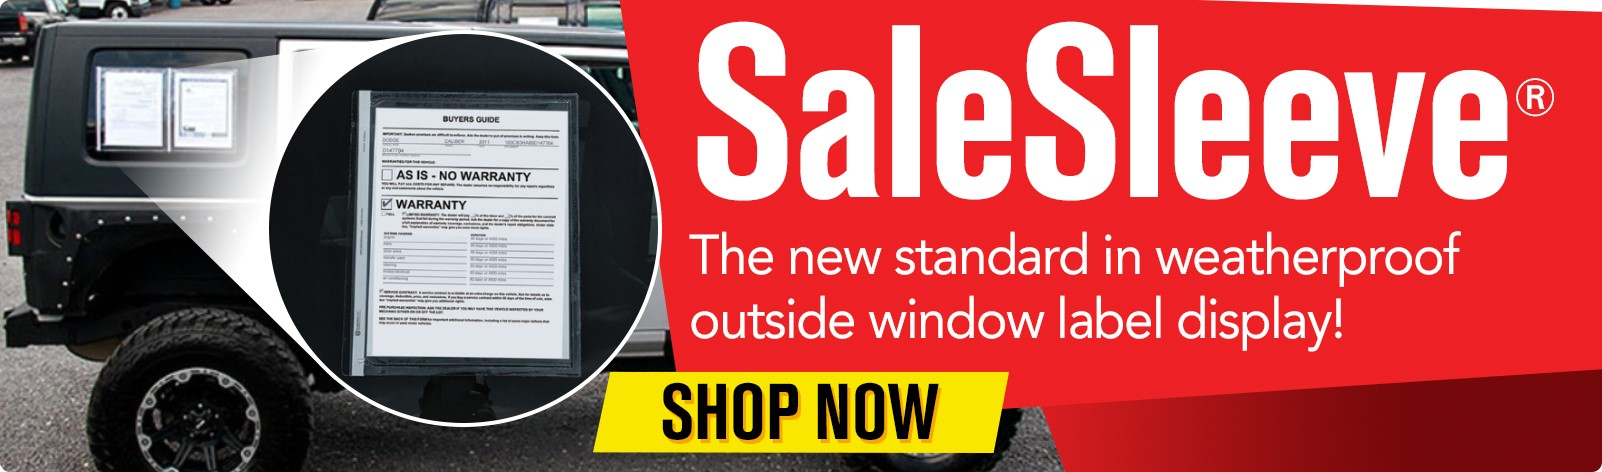 SaleSleeve - The new standard in weatherproof outside window label display!